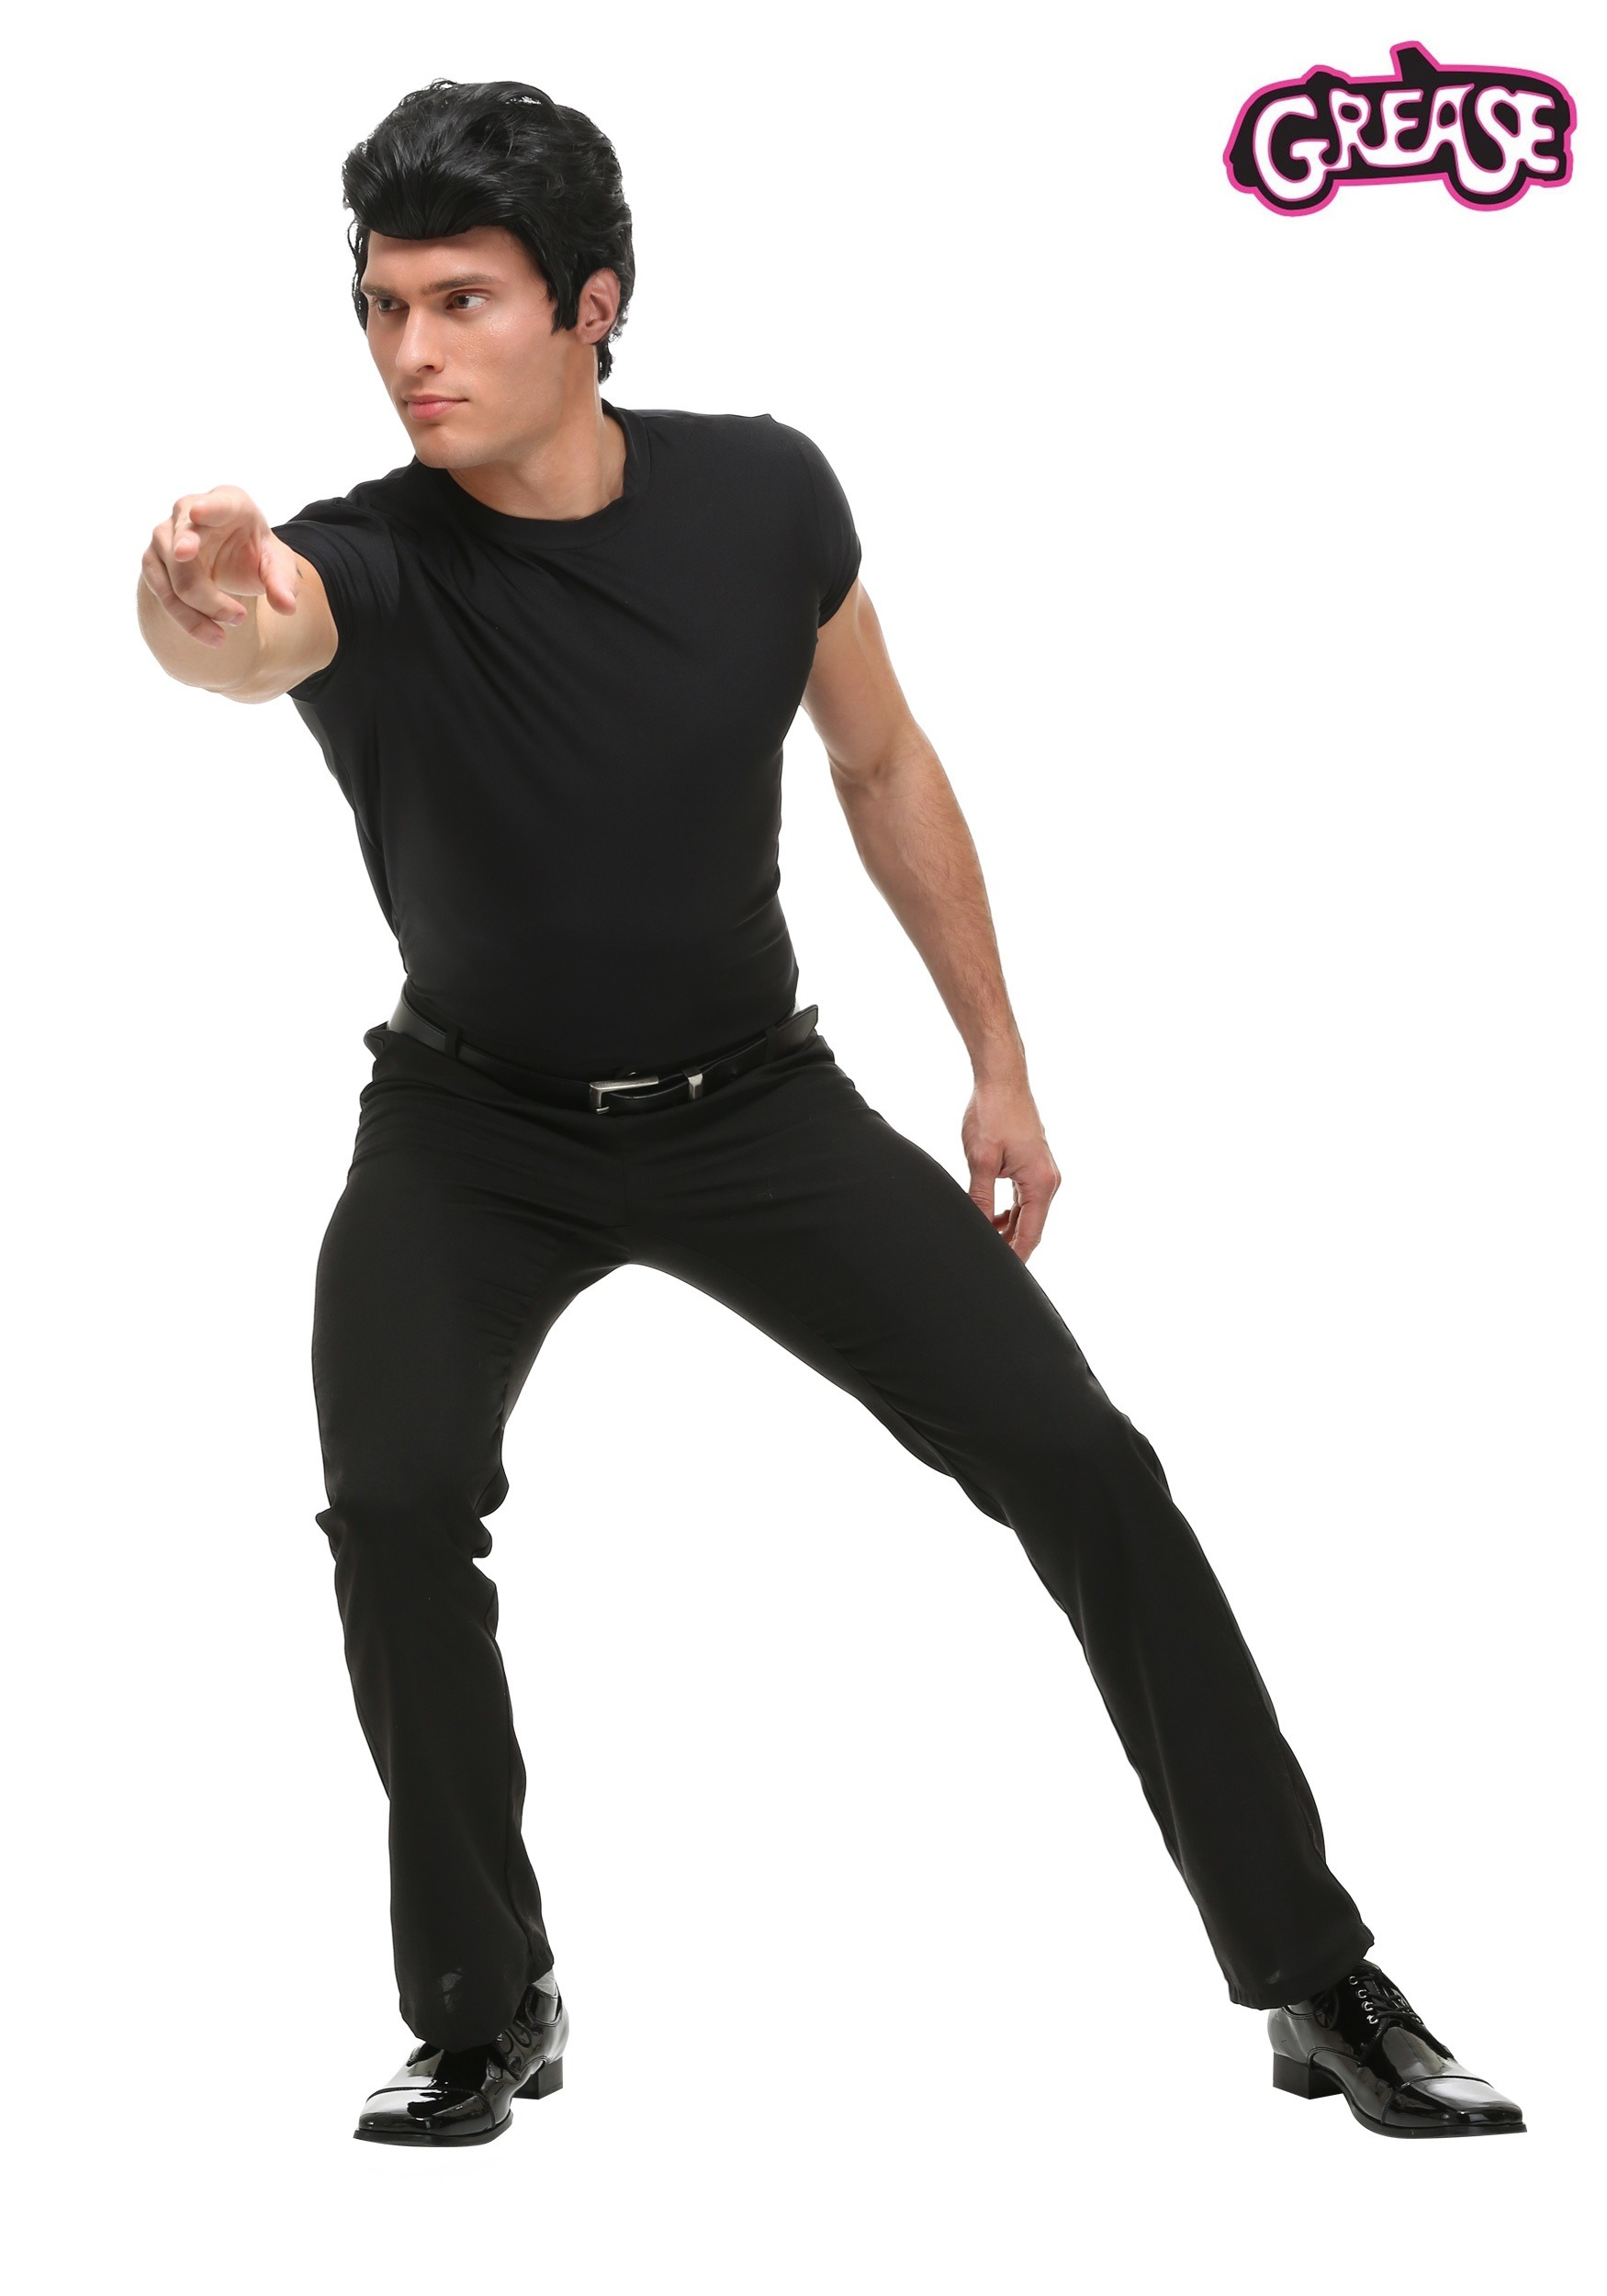 grease danny costume